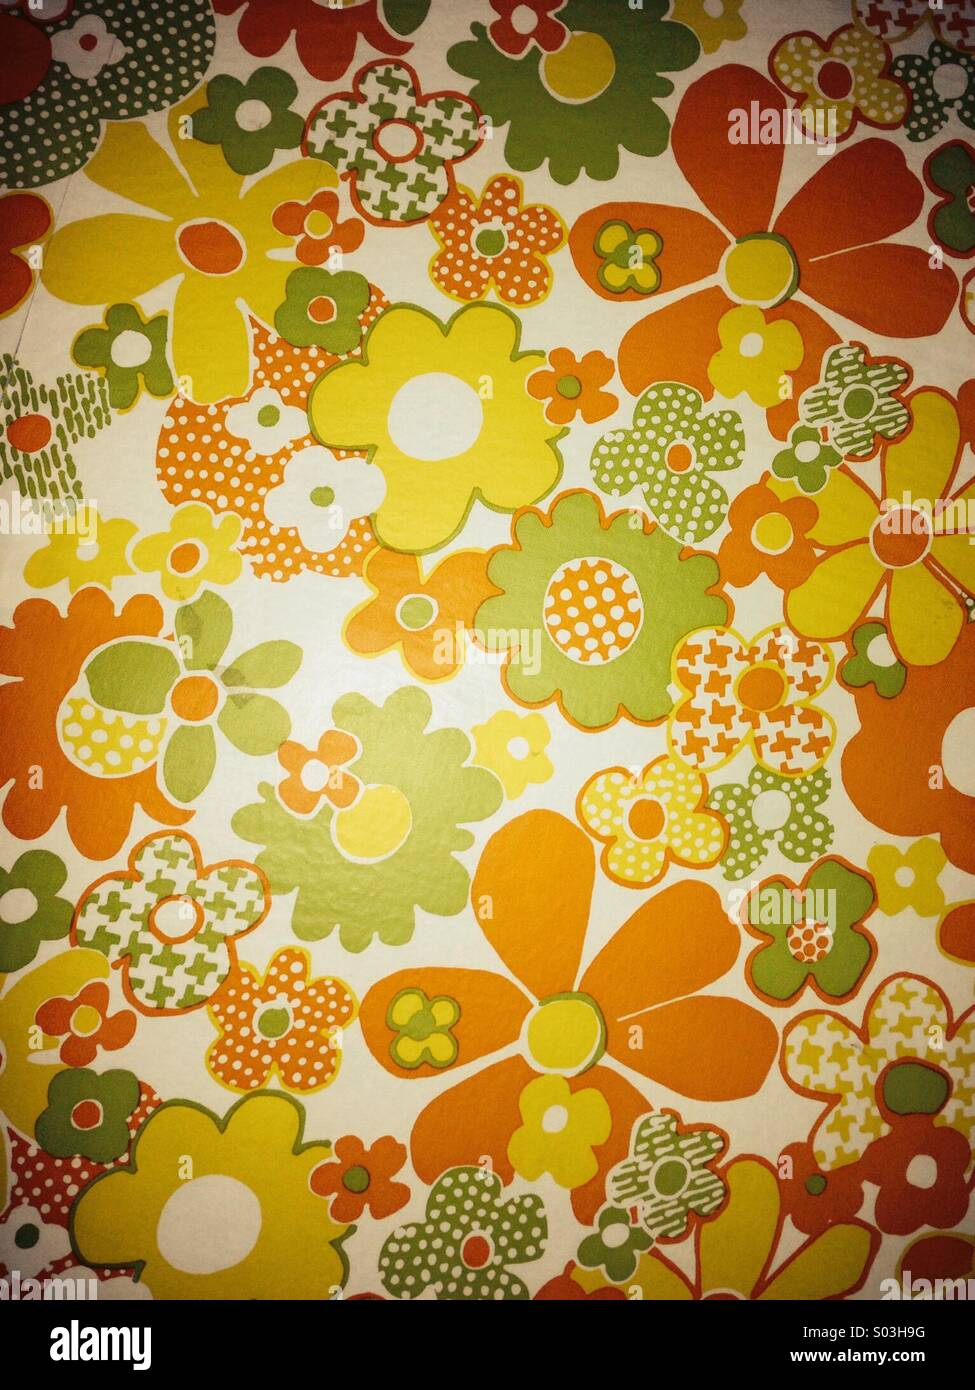 70s Floral Wallpaper Stock Photo 309866076 Alamy